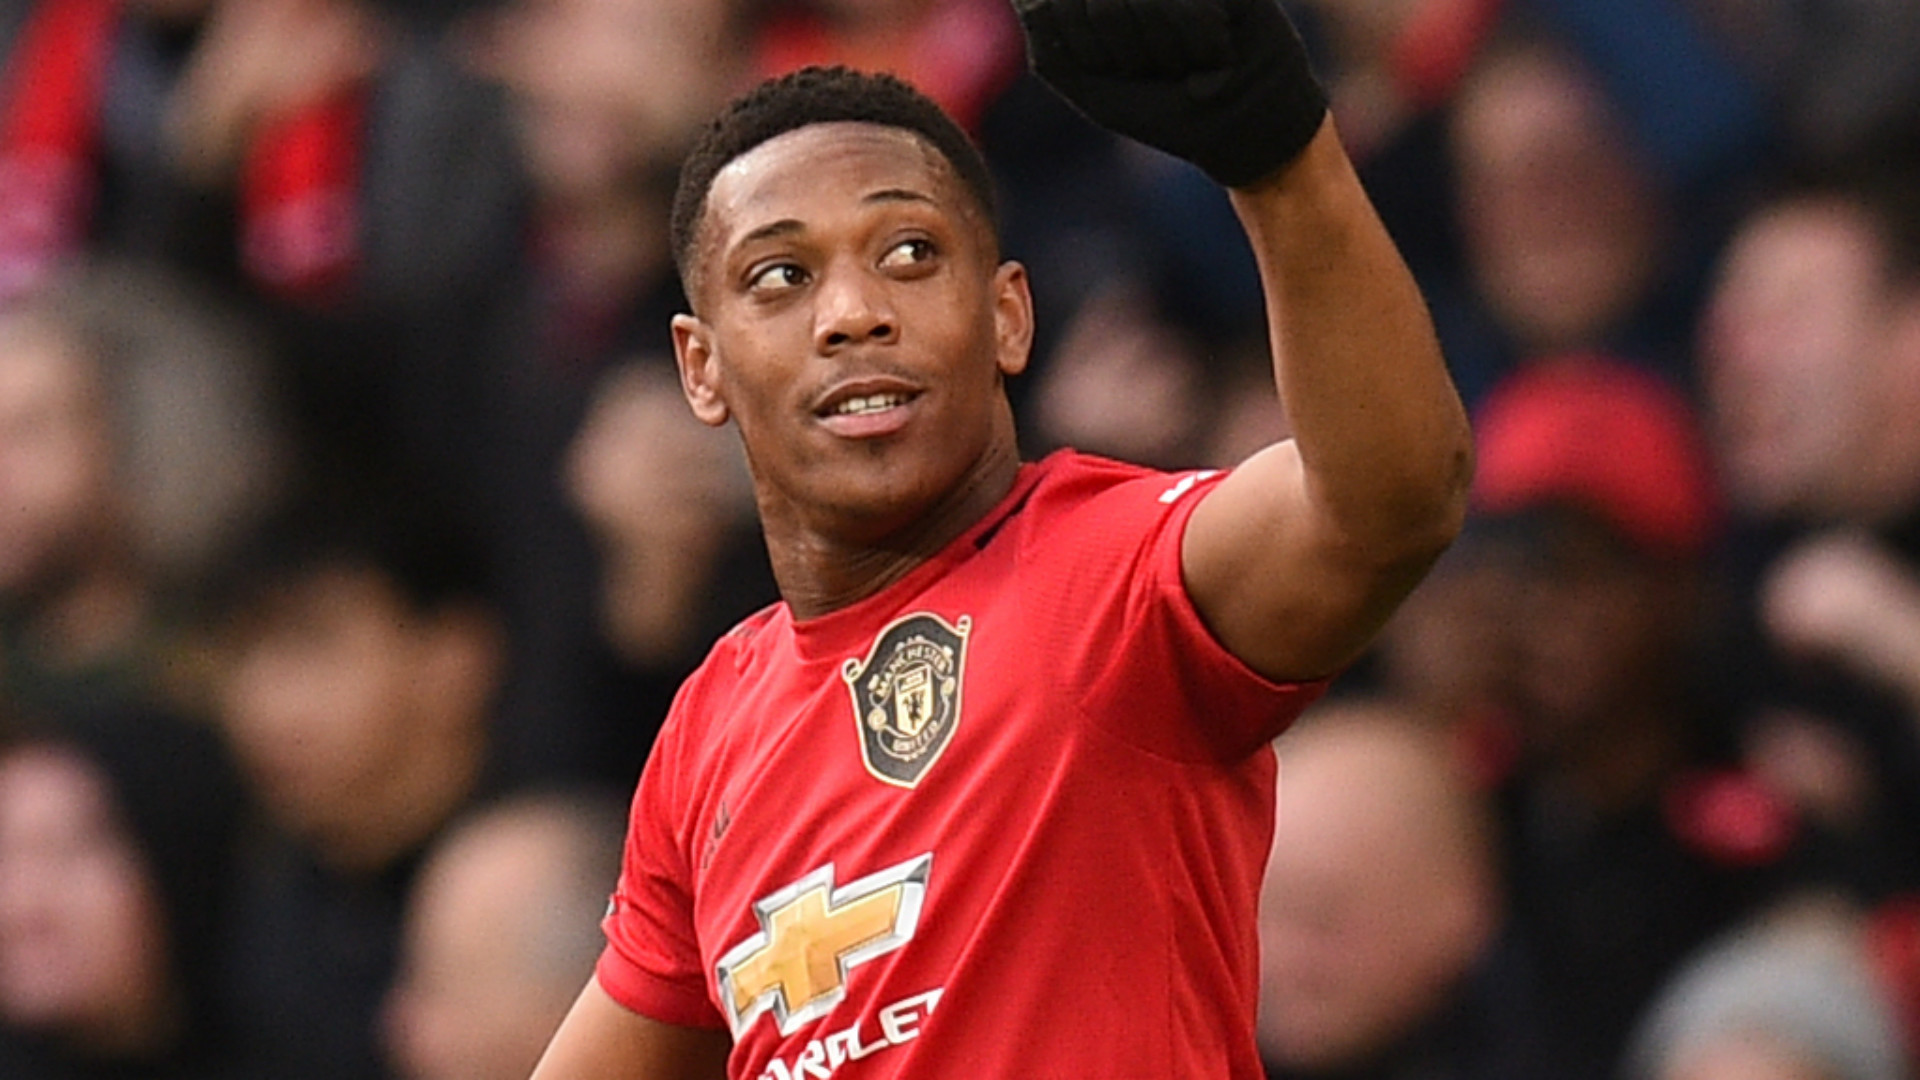 'I want to go to the Euros' - Man Utd star Martial targets return to France squad